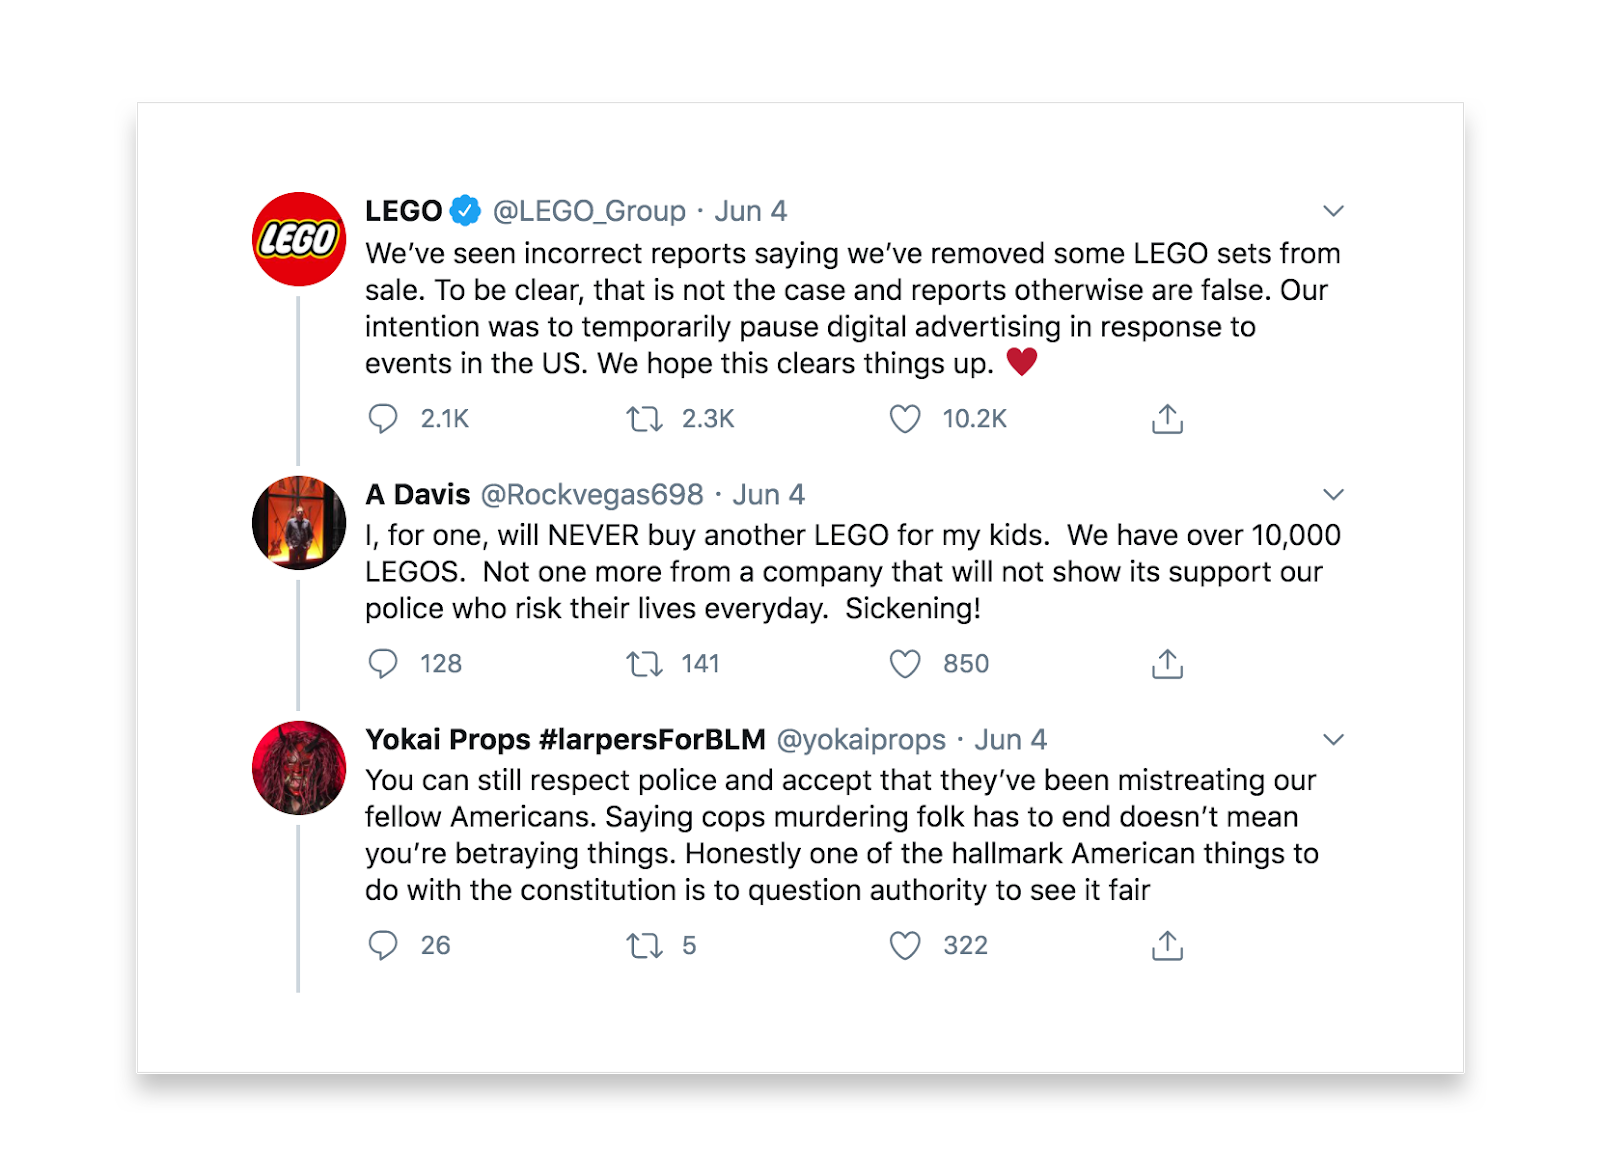 This Twitter conversation reads: Lego says We've seen incorrect reports saying we've removed some LEGO sets from sale. To be clear, that is not the case and reports otherwise are false. Our intention was to temporarily pause digital advertising in response to events in the US. We hope this clear things up. A Davis replies I, for one, will NEVER buy another LEGO for my kids. We have over 10,000 LEGOS. Not one more from a company that will not show its support our police who risk their lives everyday. Sickening! Yokai Props #larpersforBLM says You can still respect police and accept that they've been mistreating our fellow Americans. Saying cops murdering folk has to end doesn't mean you're betraying things. Honestly one of the hallmark American things to do with the constitution is to question authority to see it fair